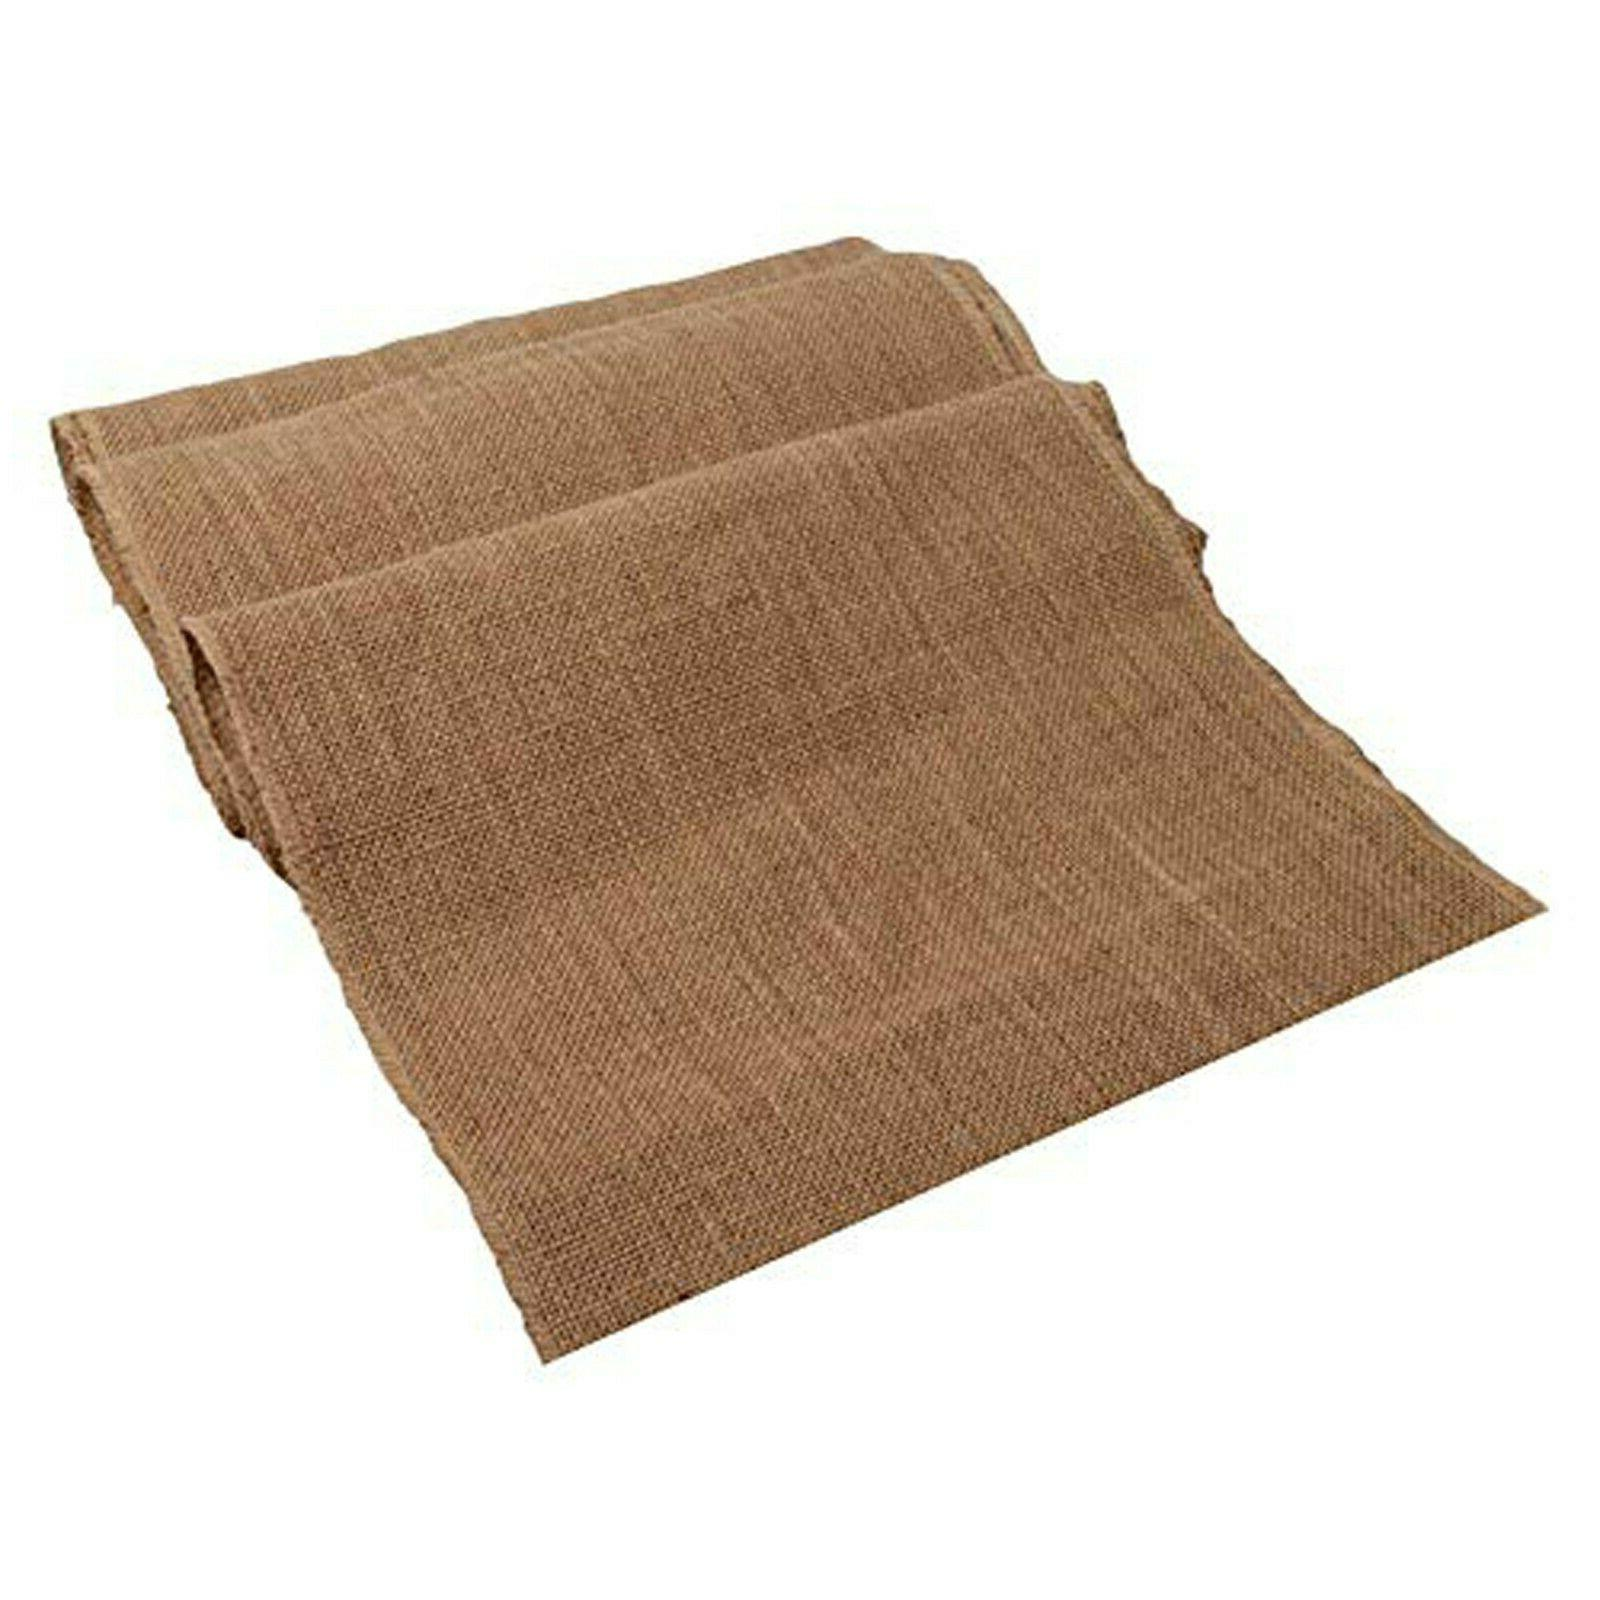 "Burlap Table Runner with fringe drop Edges, 14"" X 108"" tan c"